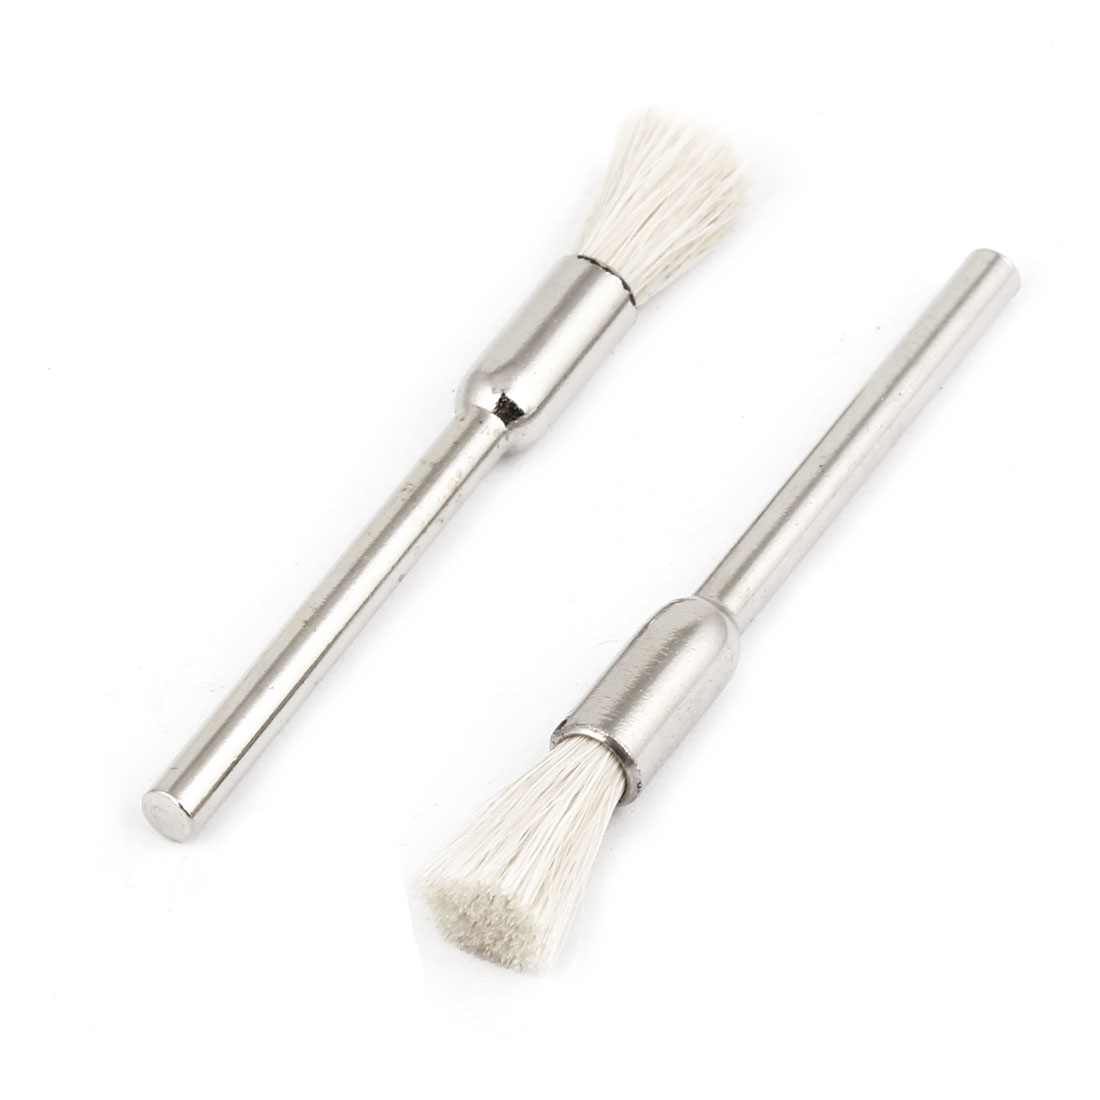 2Pcs 15mm Dia Pen Shaped White Nylon Brush Polishing Wheel Polishers for Rotary Tool